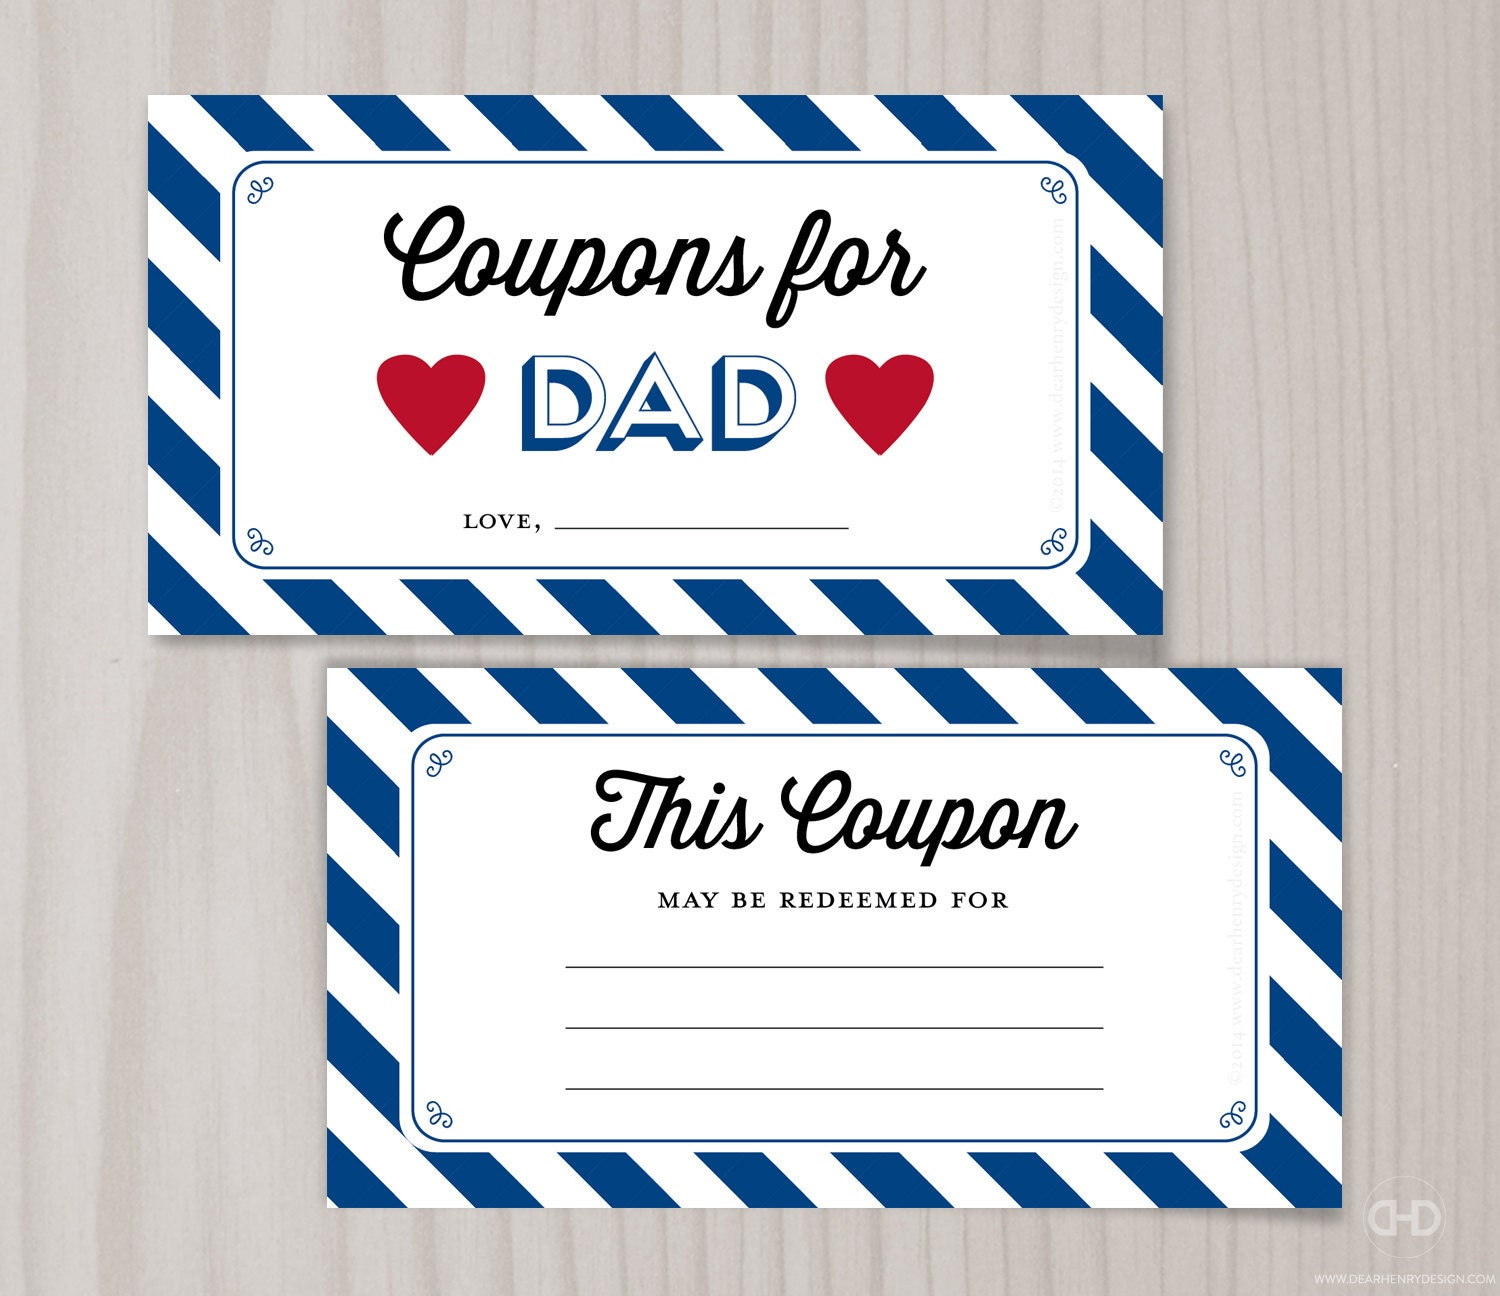 coupon book father s day blank printable coupons blank valentine s coupon book last minute present for dad coupons for daddy from kids birthday